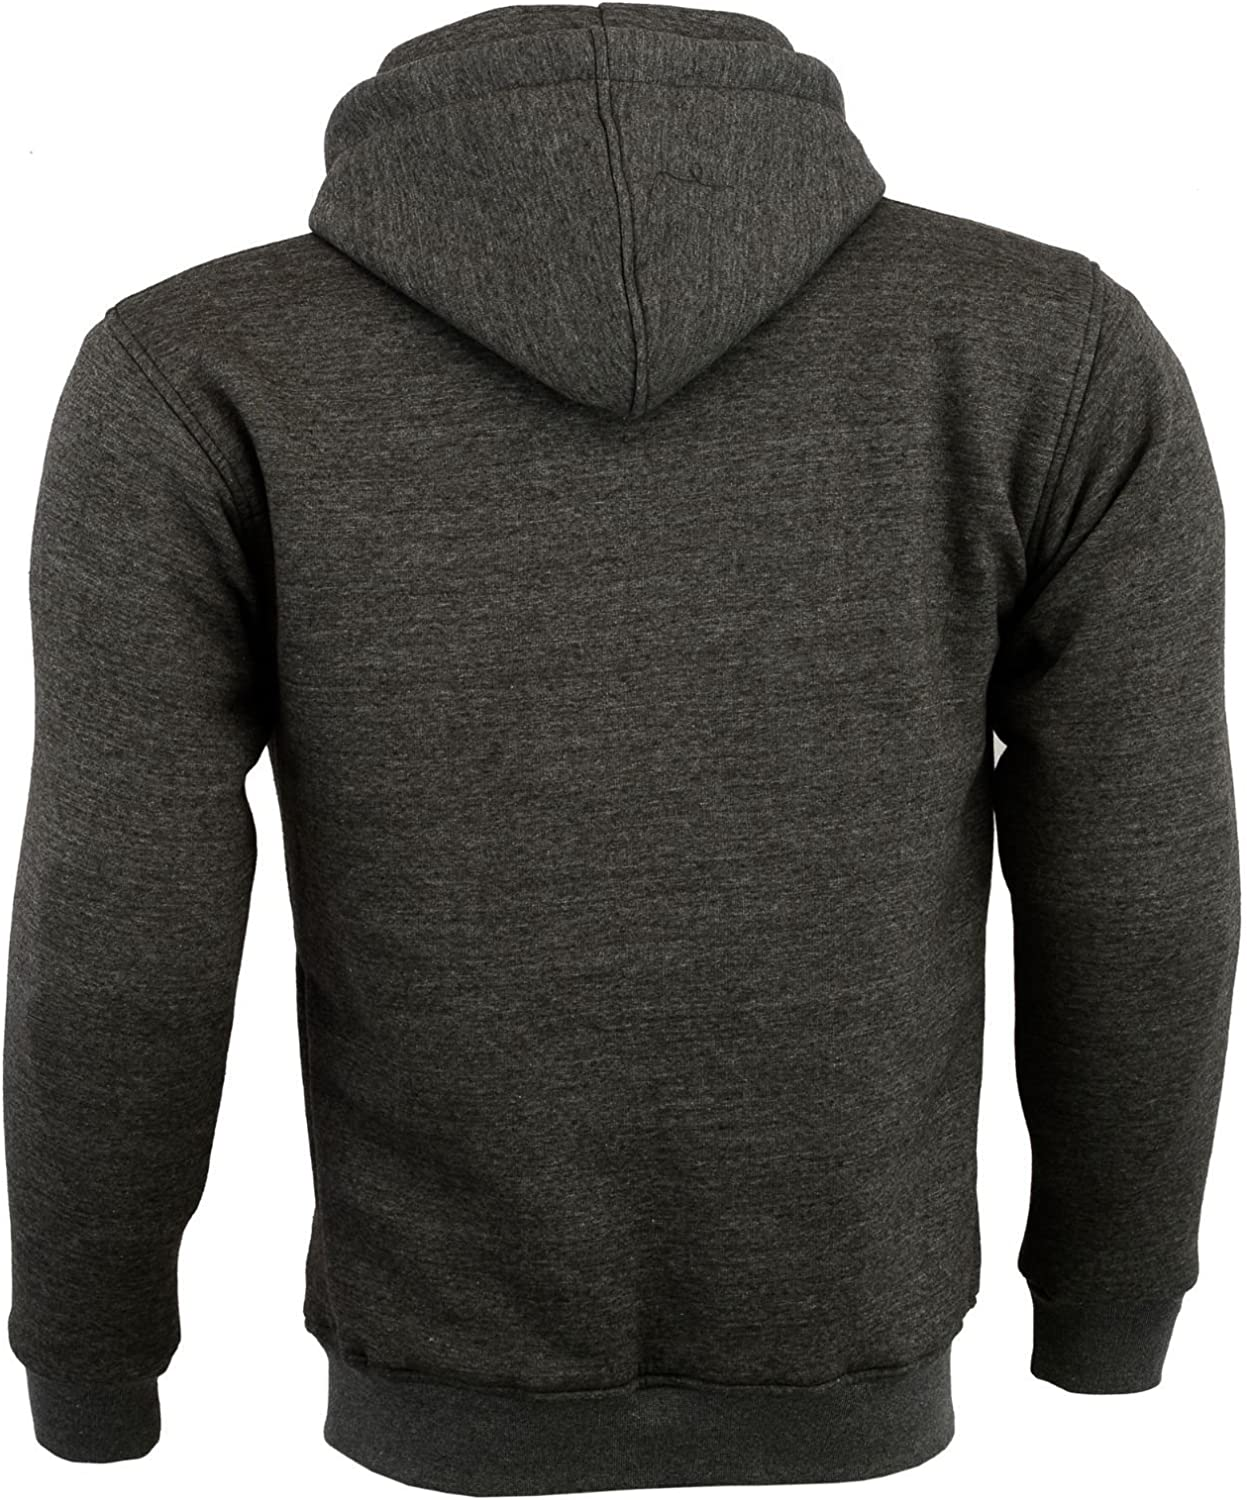 New Motorbike Motorcycle Fleece Hoody Hoodie Full CE Removable Protection Armour XXXL, Grey